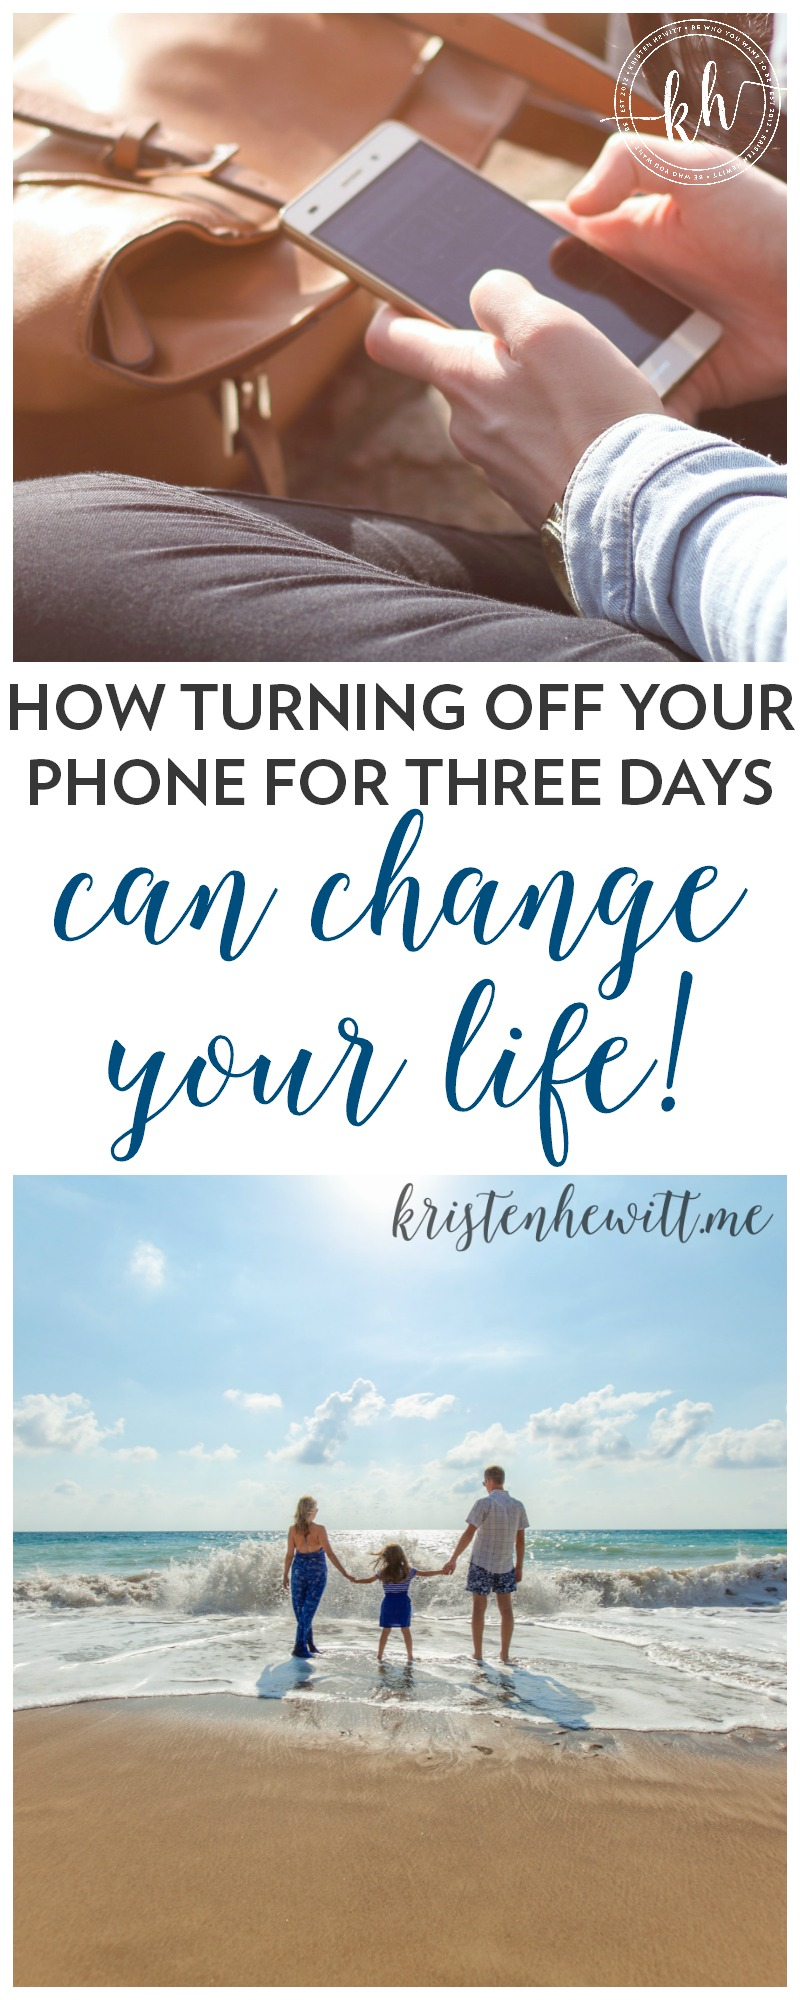 Have you ever REALLY taken a social media timeout? Turned off your phone and disconnected? Here's how turning off your phone for three days can change your life!